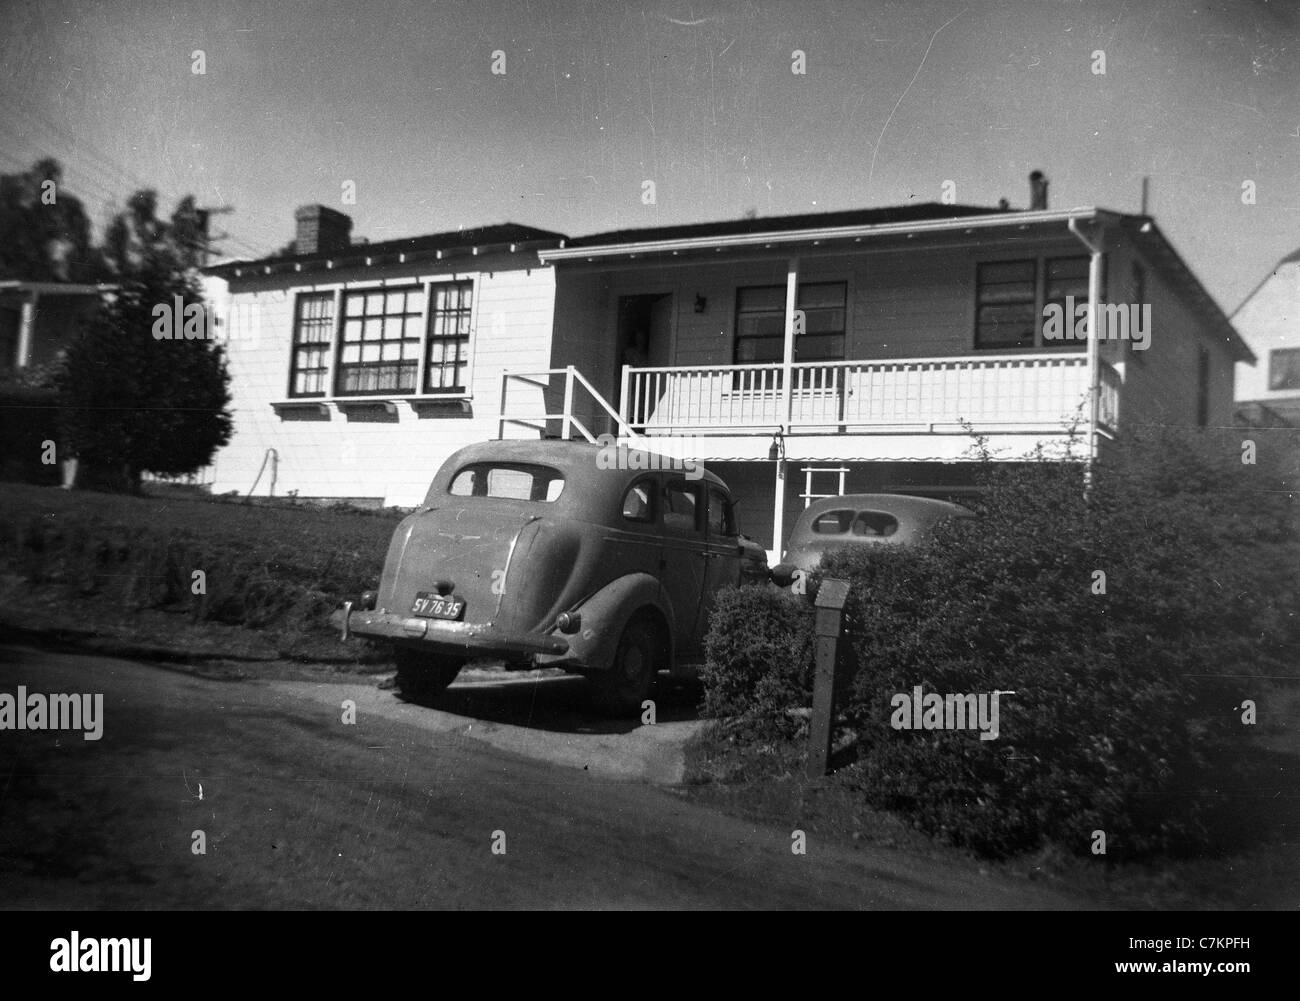 1940s cars parked in front of los angeles southern california house suburbia home day horizontal housing Stock Photo